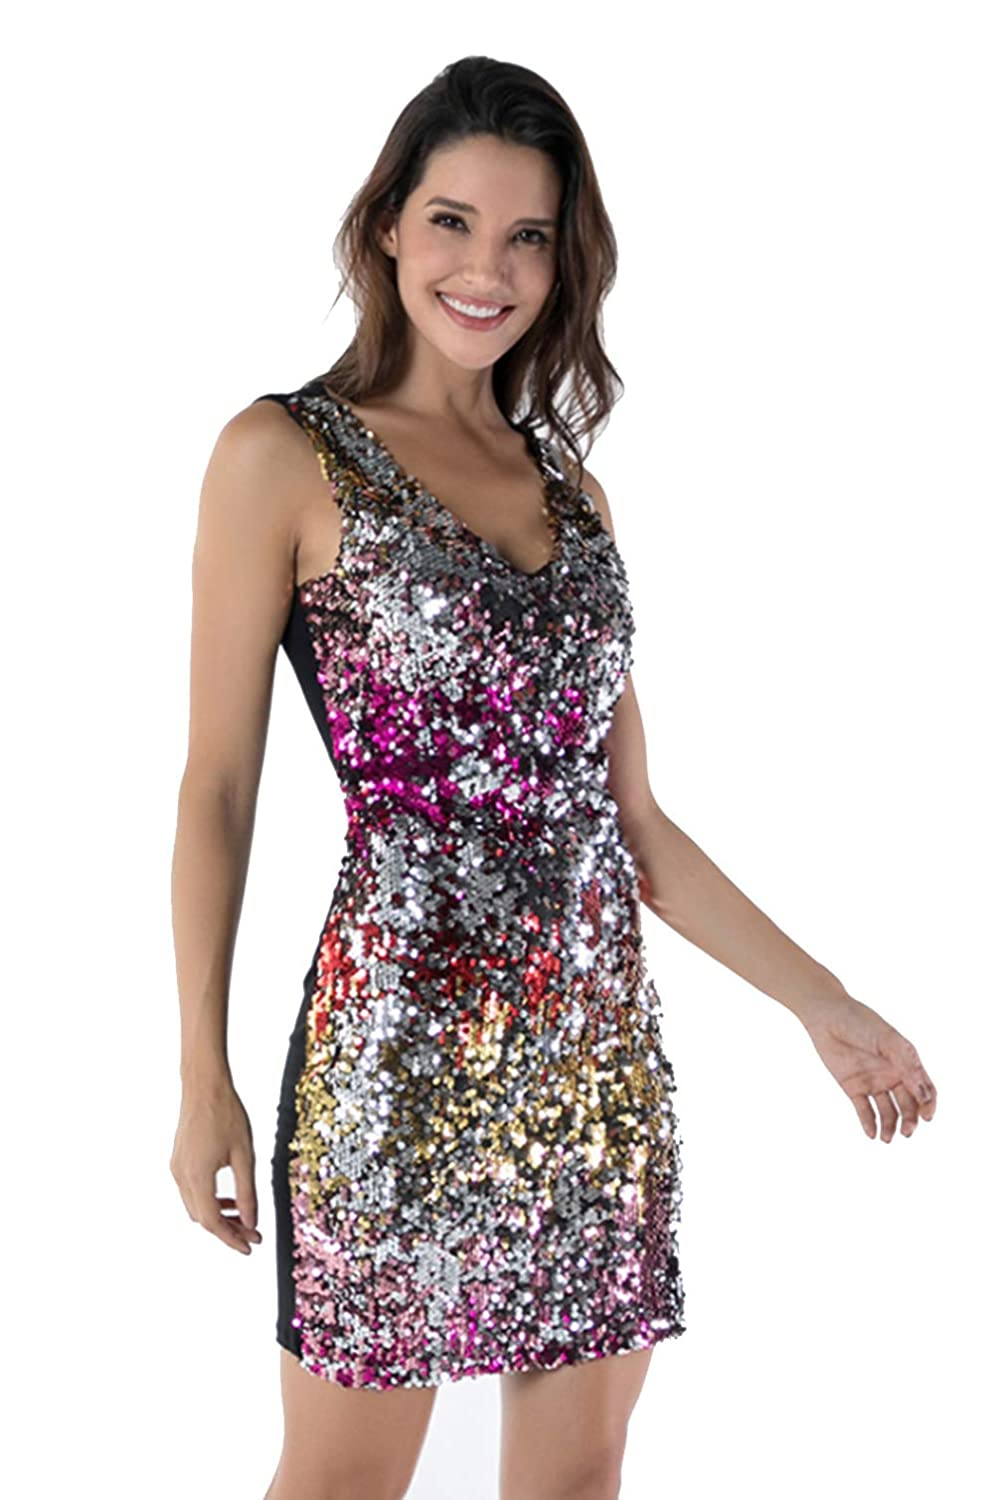 39cedc85ee GMHO Women's Sexy Cocktail Dress V Neck Sleeveless Sequin Glitter Bodycon  Mini Midi Stretchy Party Club Dress